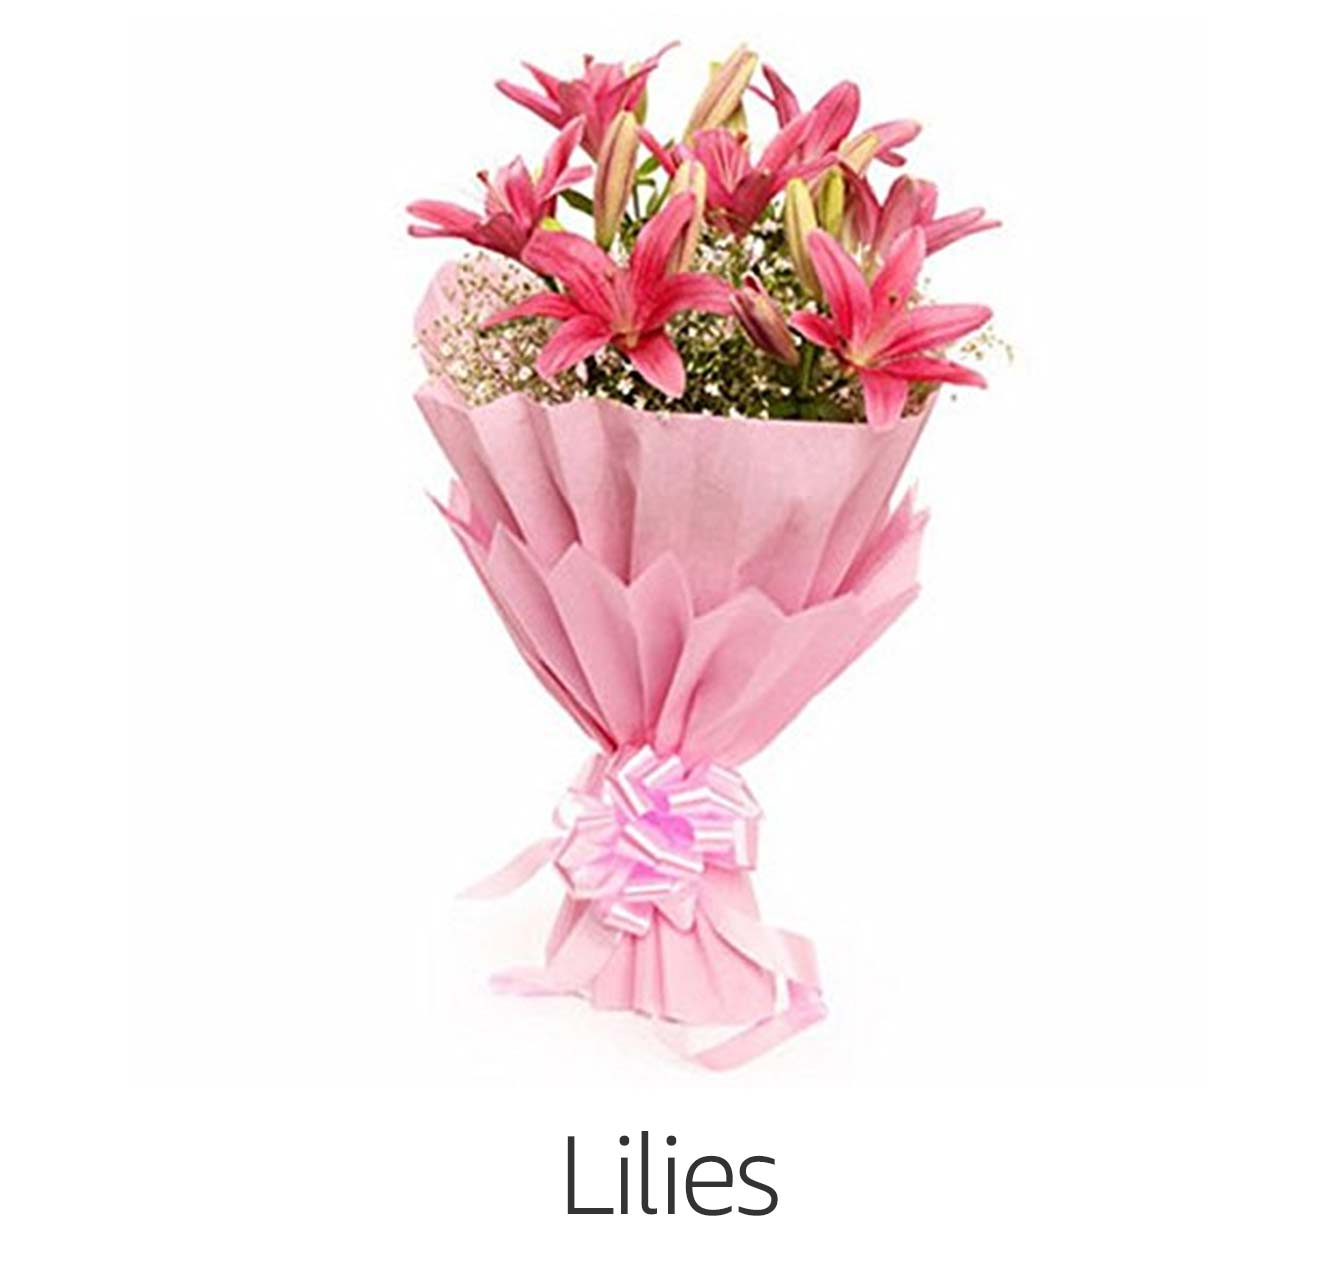 Amazon.in: Fresh Flowers: Home & Kitchen: Bouquets, Cut ...